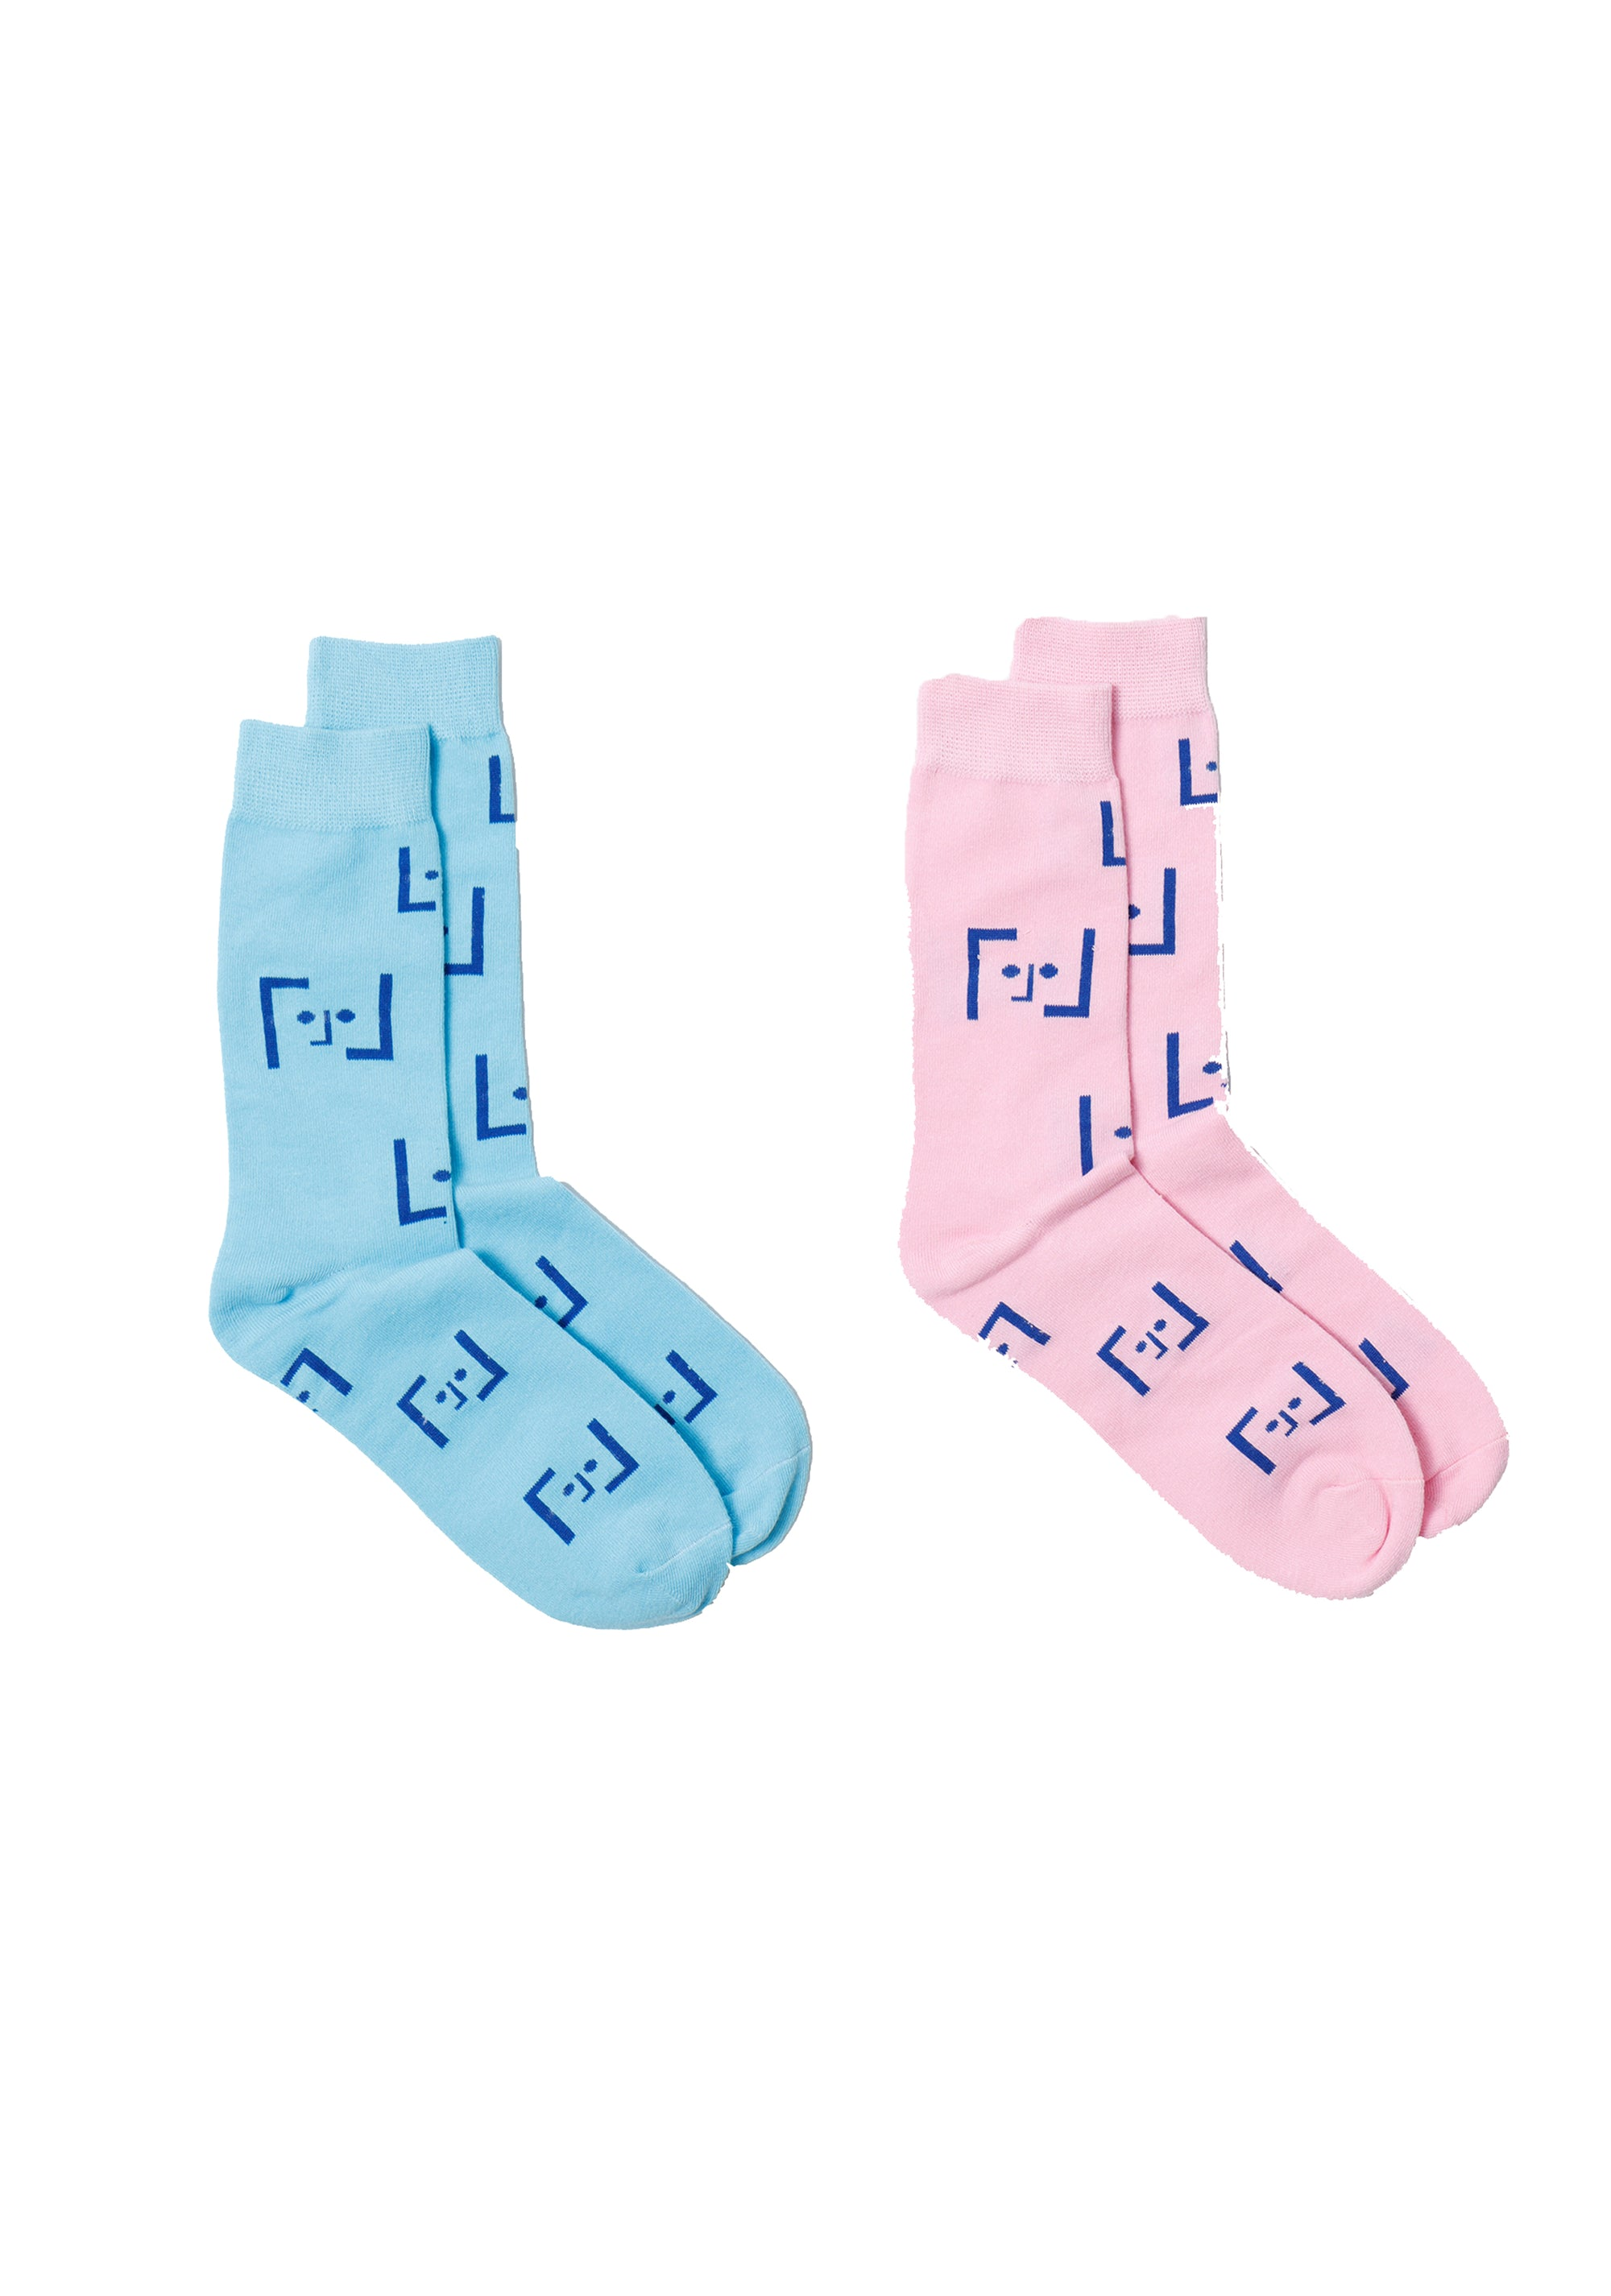 Socks L'origine L'Face 2 Pack